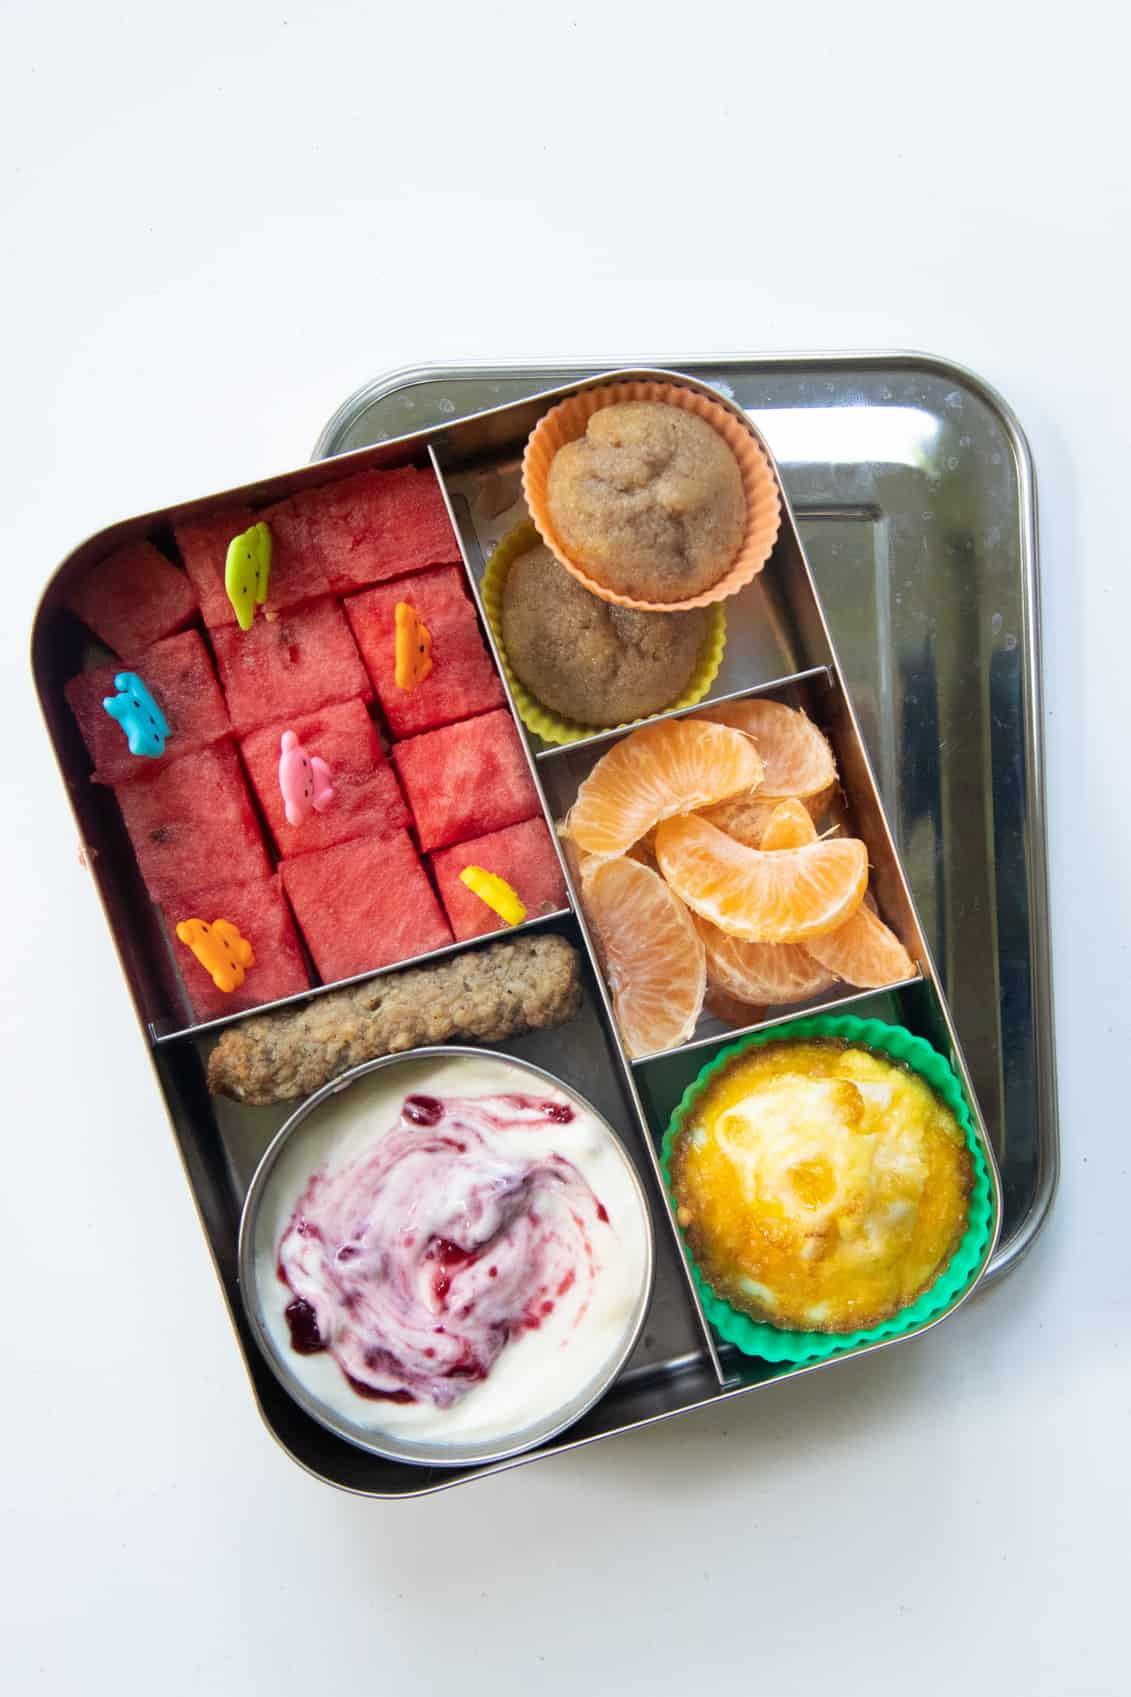 Stainless steel lunchbox packed with brunch foods: watermelon cubes, muffins, egg cup, clementine, yogurt.